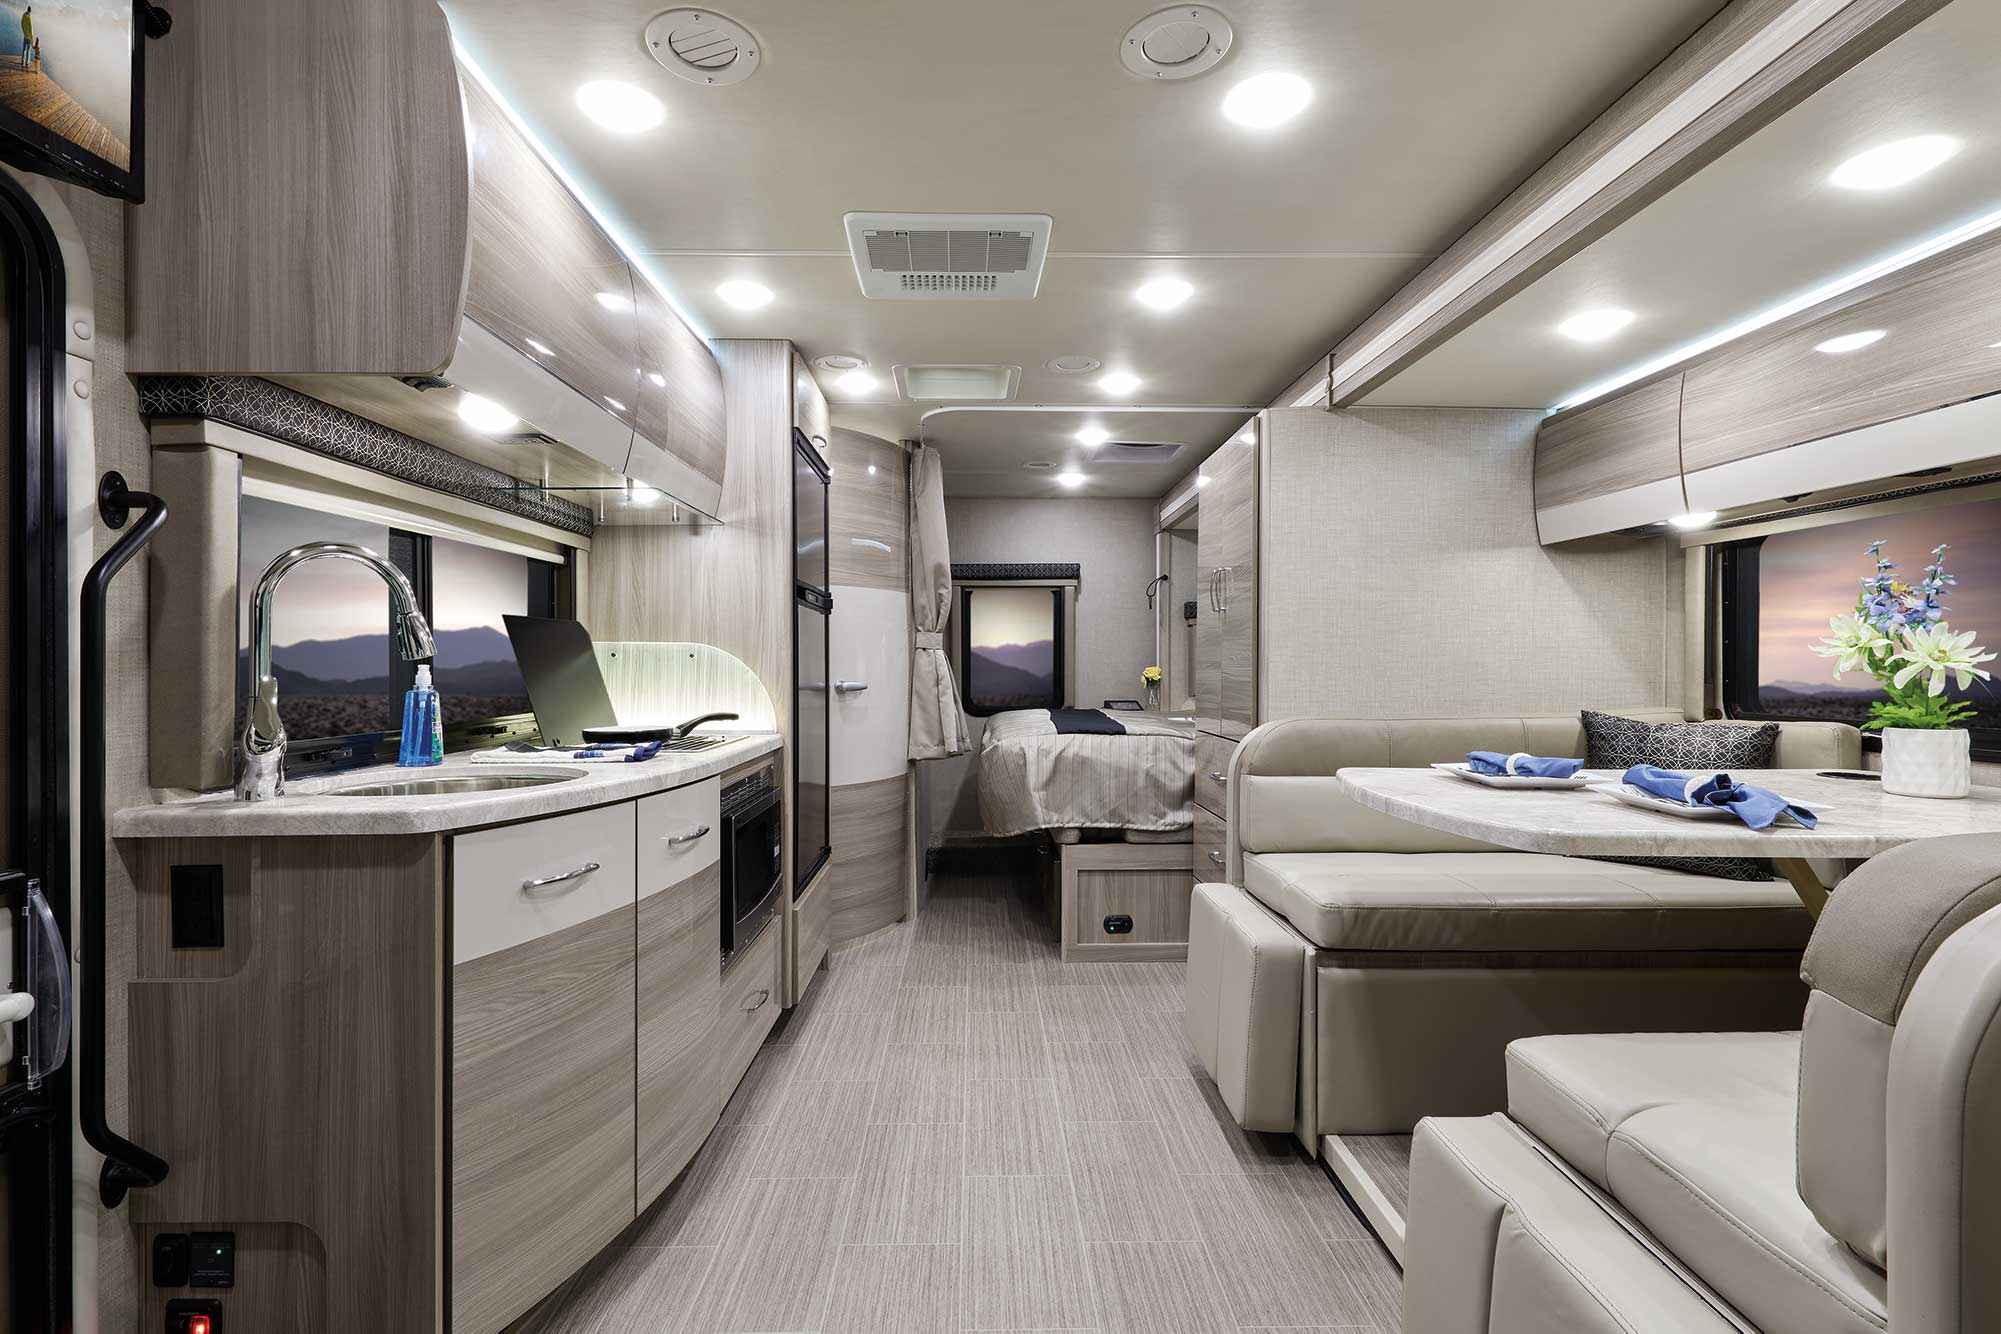 tiburon sprinter rv interior